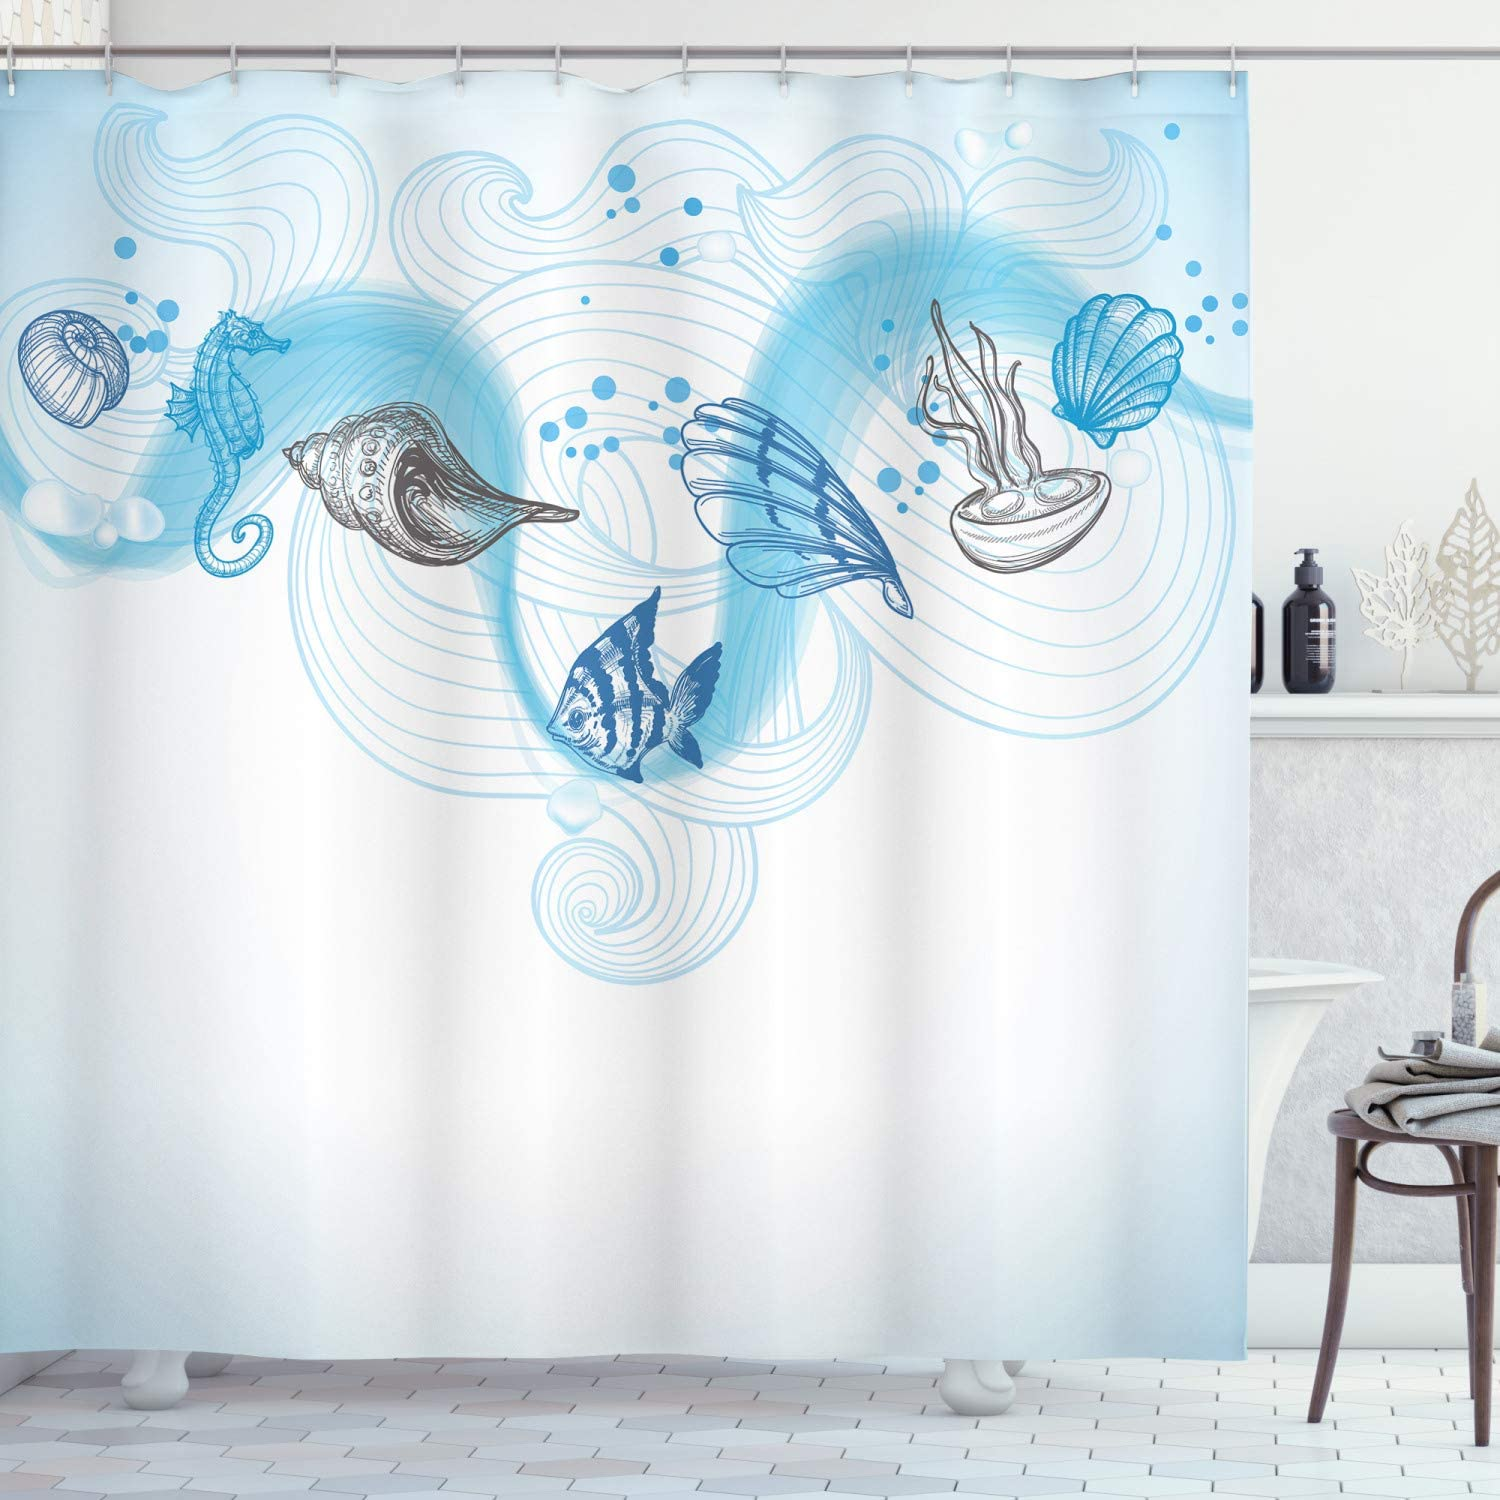 Ambesonne Nautical Shower Curtain, Marine Theme Seashells Ocean Waves Fishes Seahorse Swirls Curves and Bubbles, Cloth Fabric Bathroom Decor Set with Hooks, 70